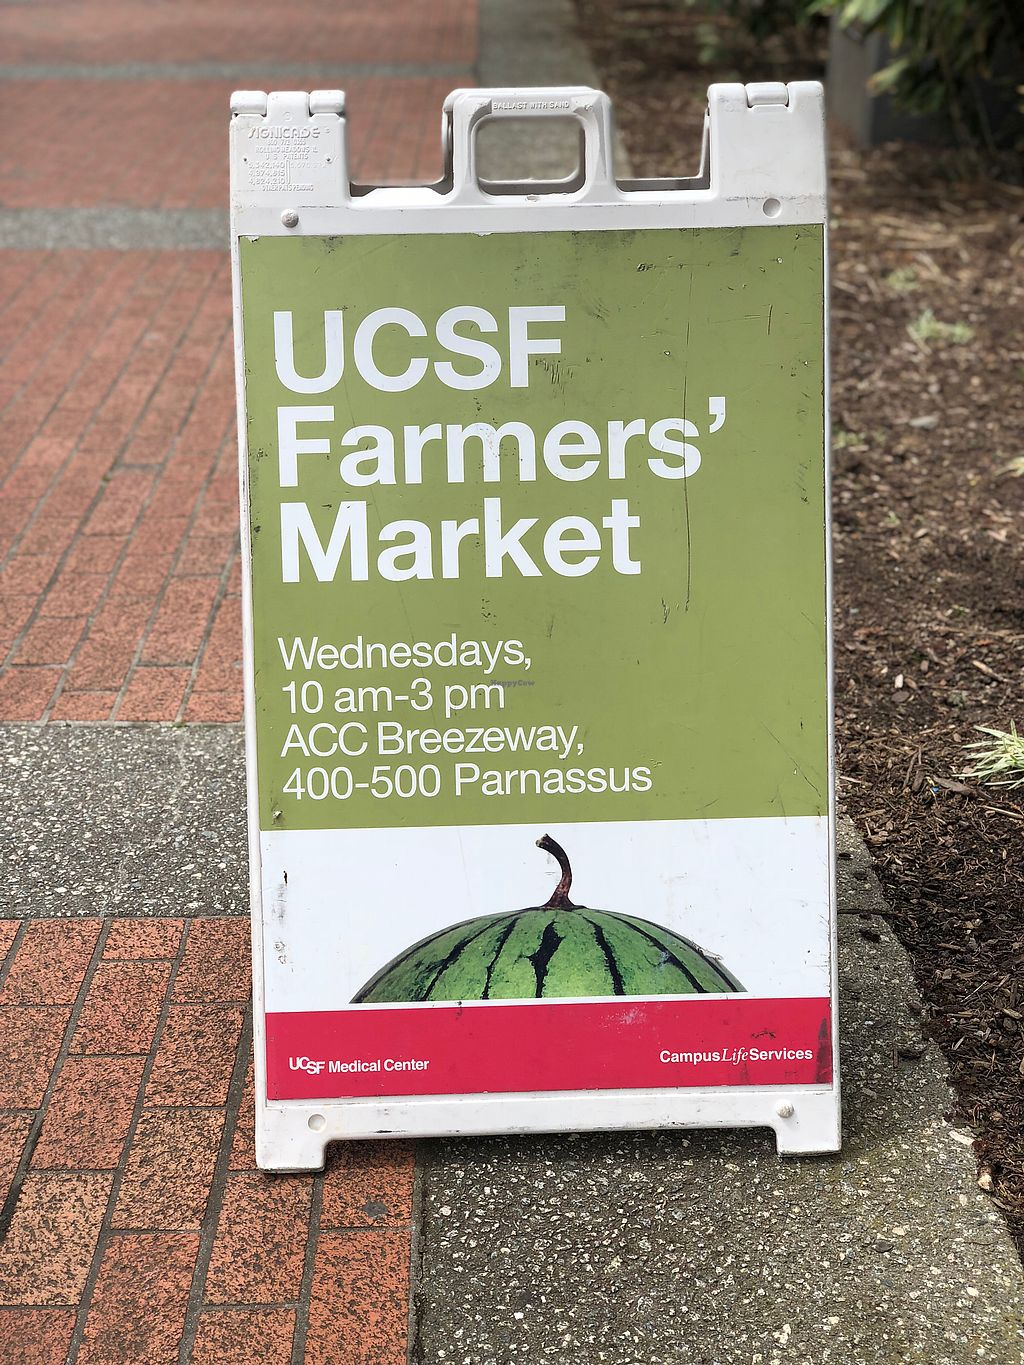 """Photo of Parnassus Farmers' Market  by <a href=""""/members/profile/BrittanyHowze"""">BrittanyHowze</a> <br/>Some signs say 10-2, others 10-3? <br/> April 18, 2018  - <a href='/contact/abuse/image/31958/387726'>Report</a>"""